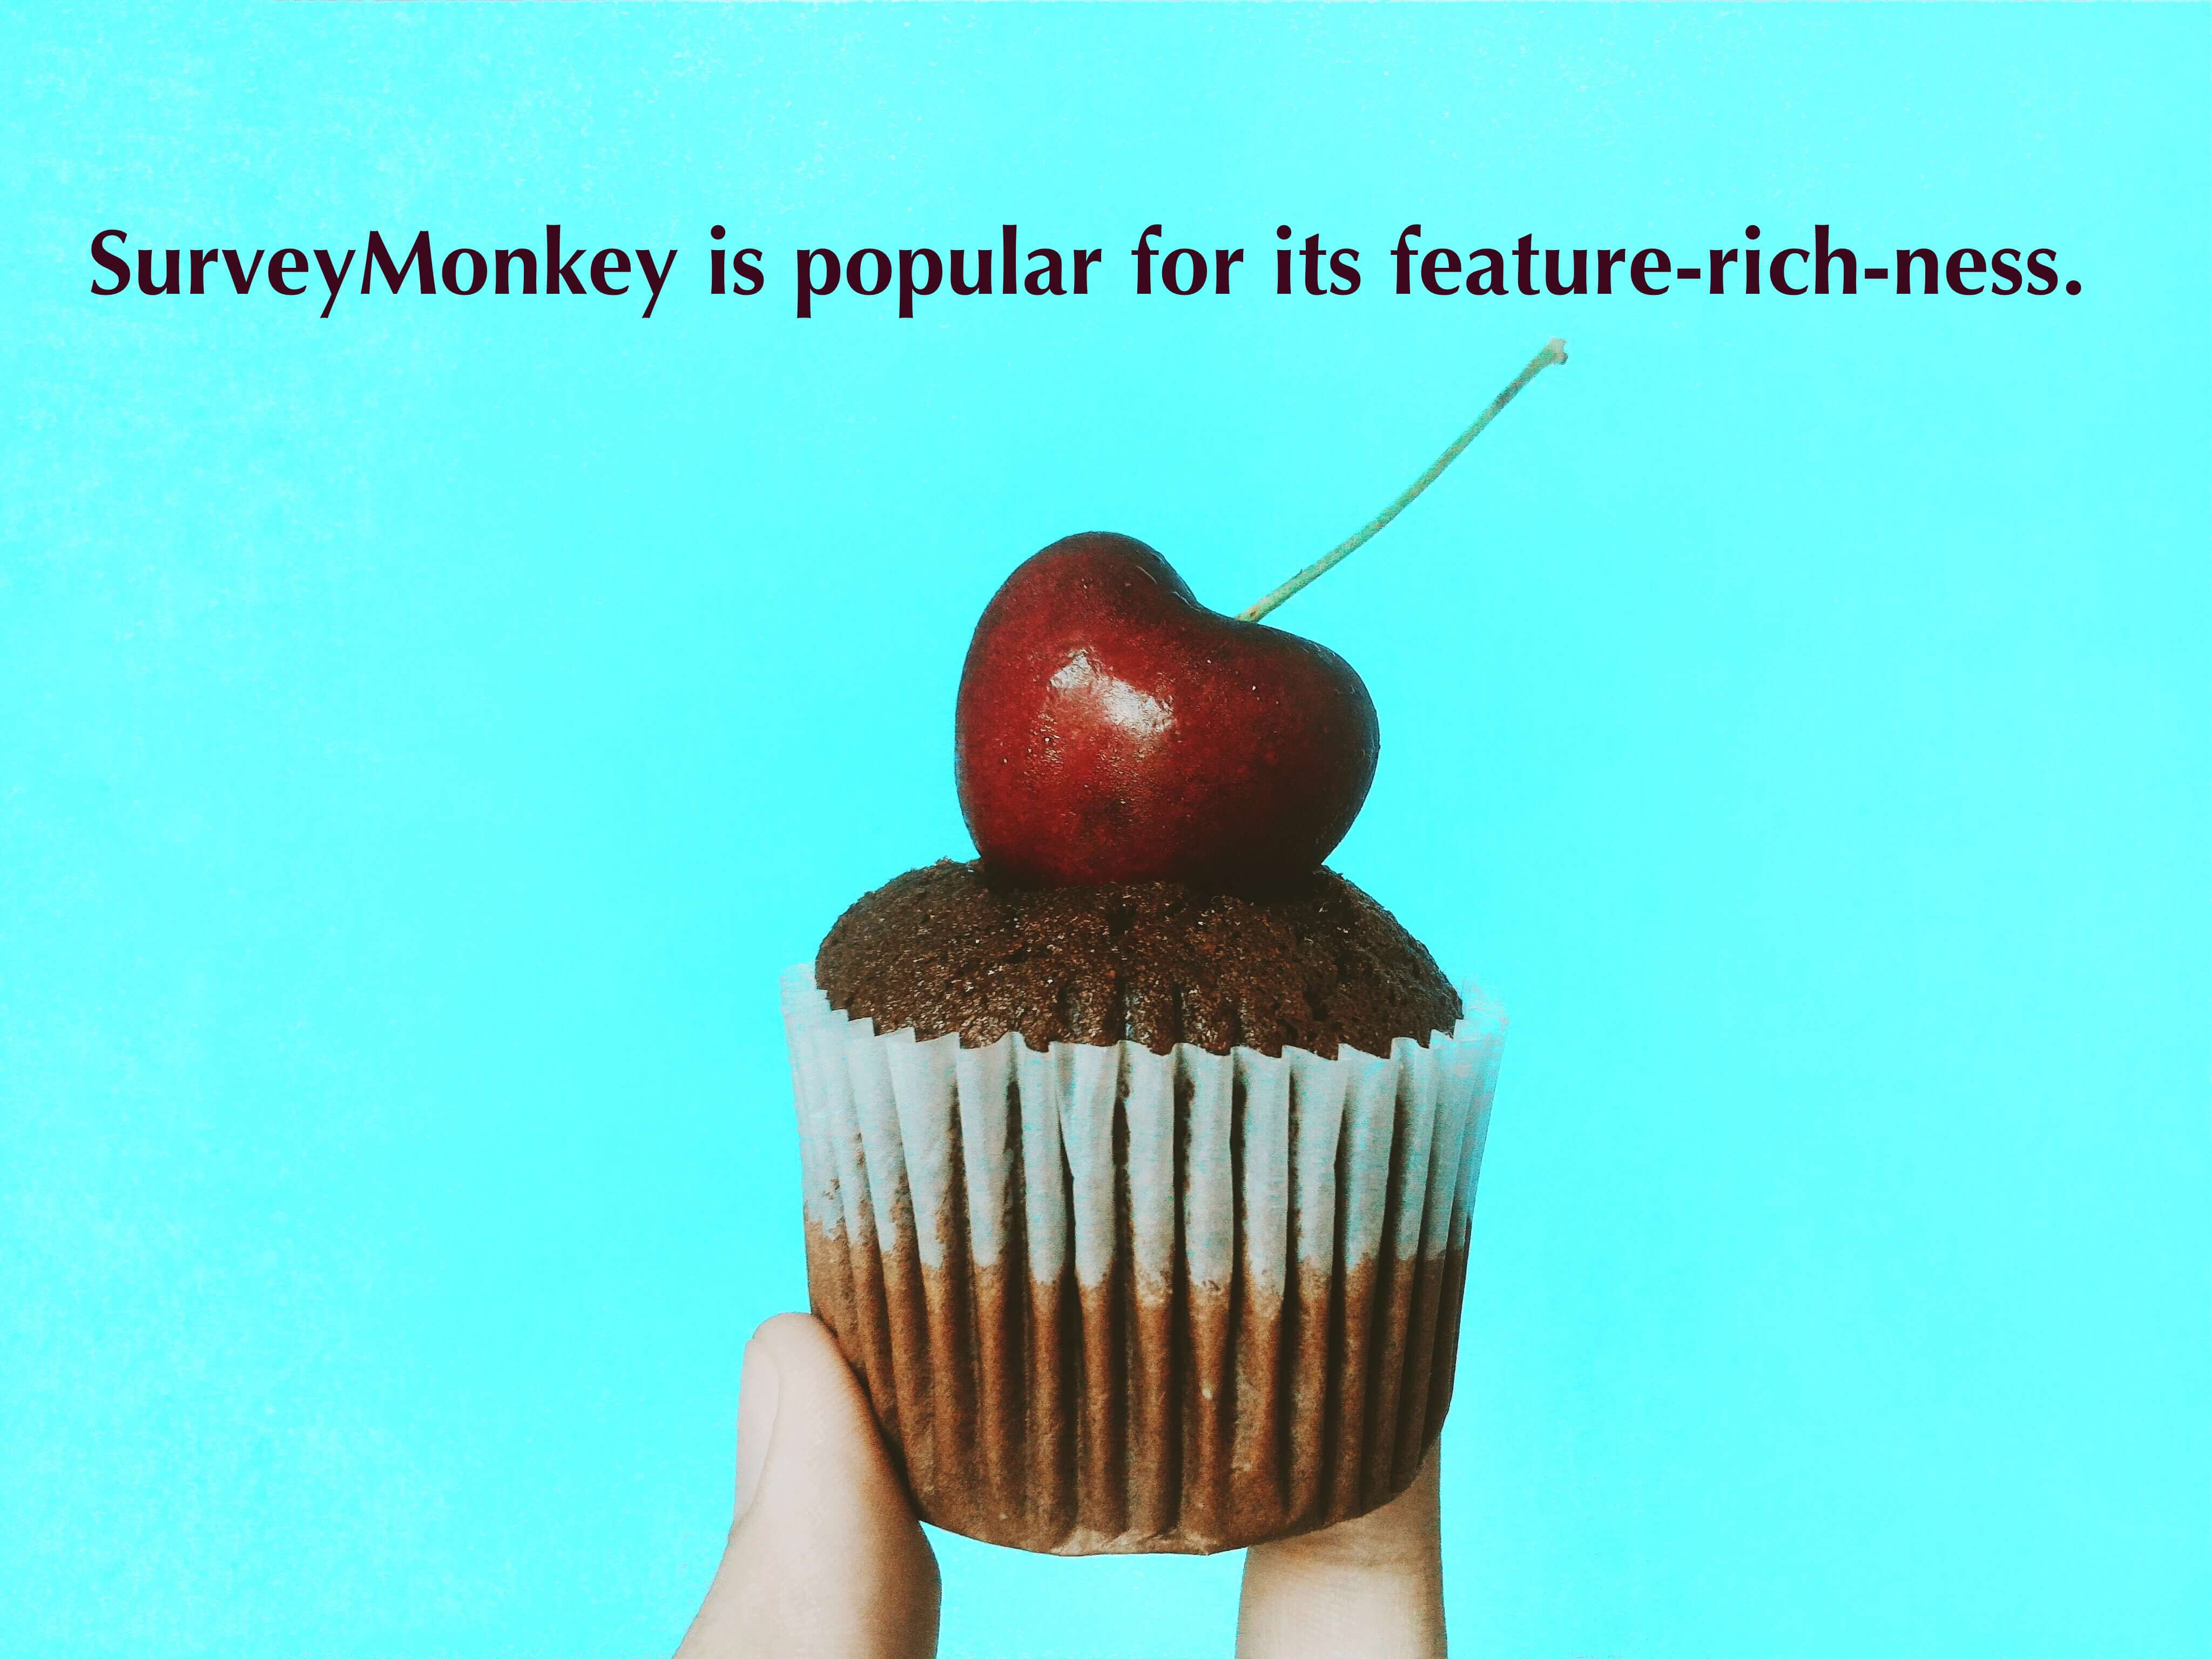 SurveyMonkey is popular for its feature-rich-ness.